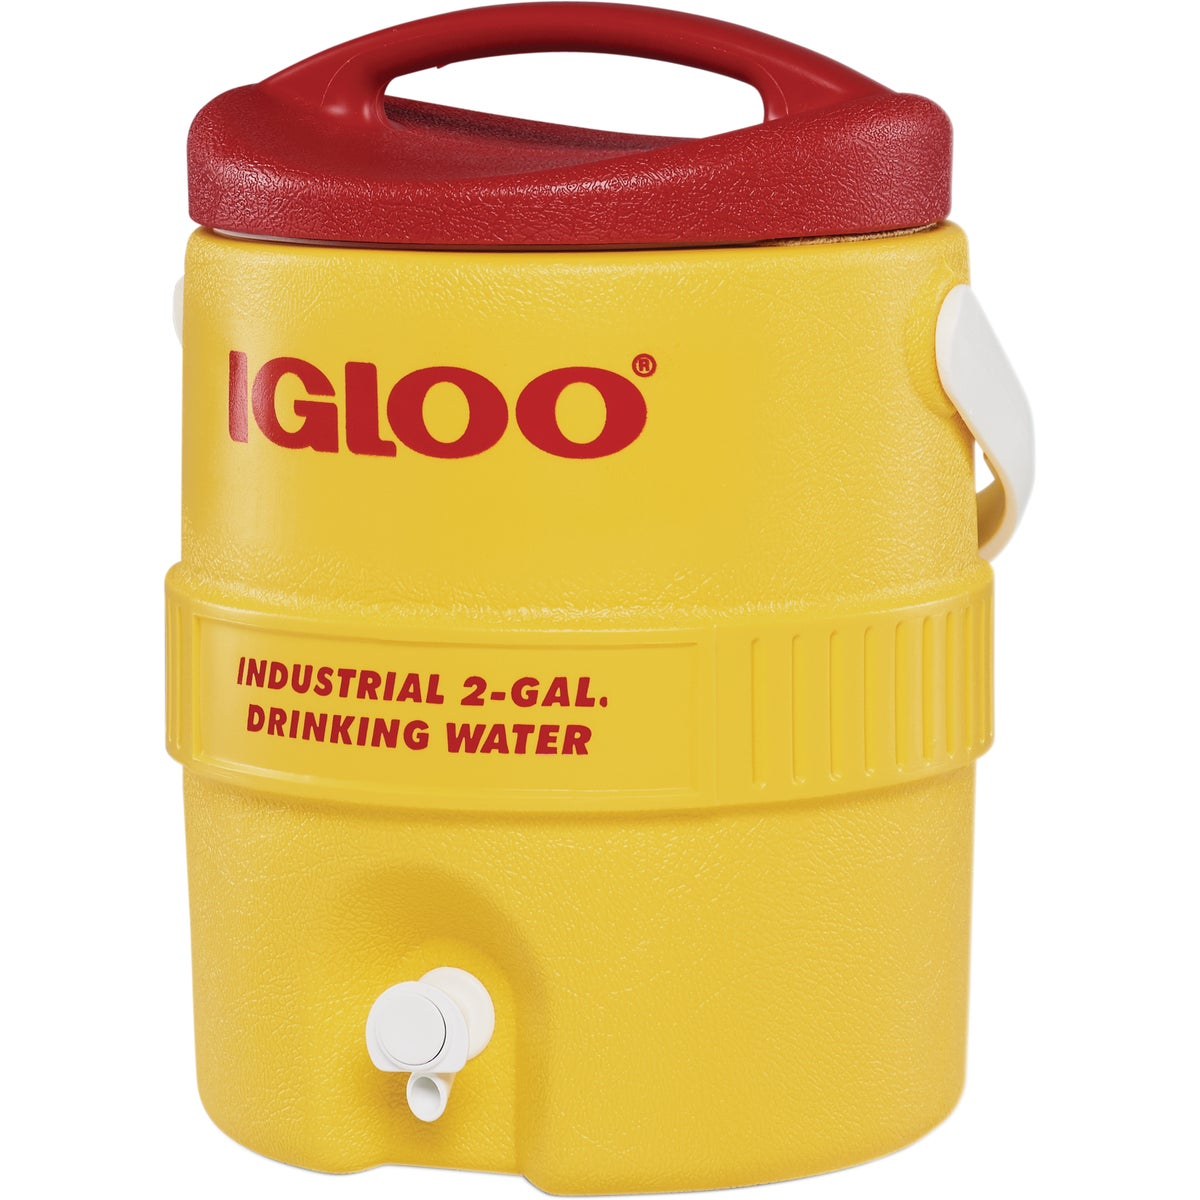 2GAL BEVERAGE COOLER - 421 by Igloo Corp